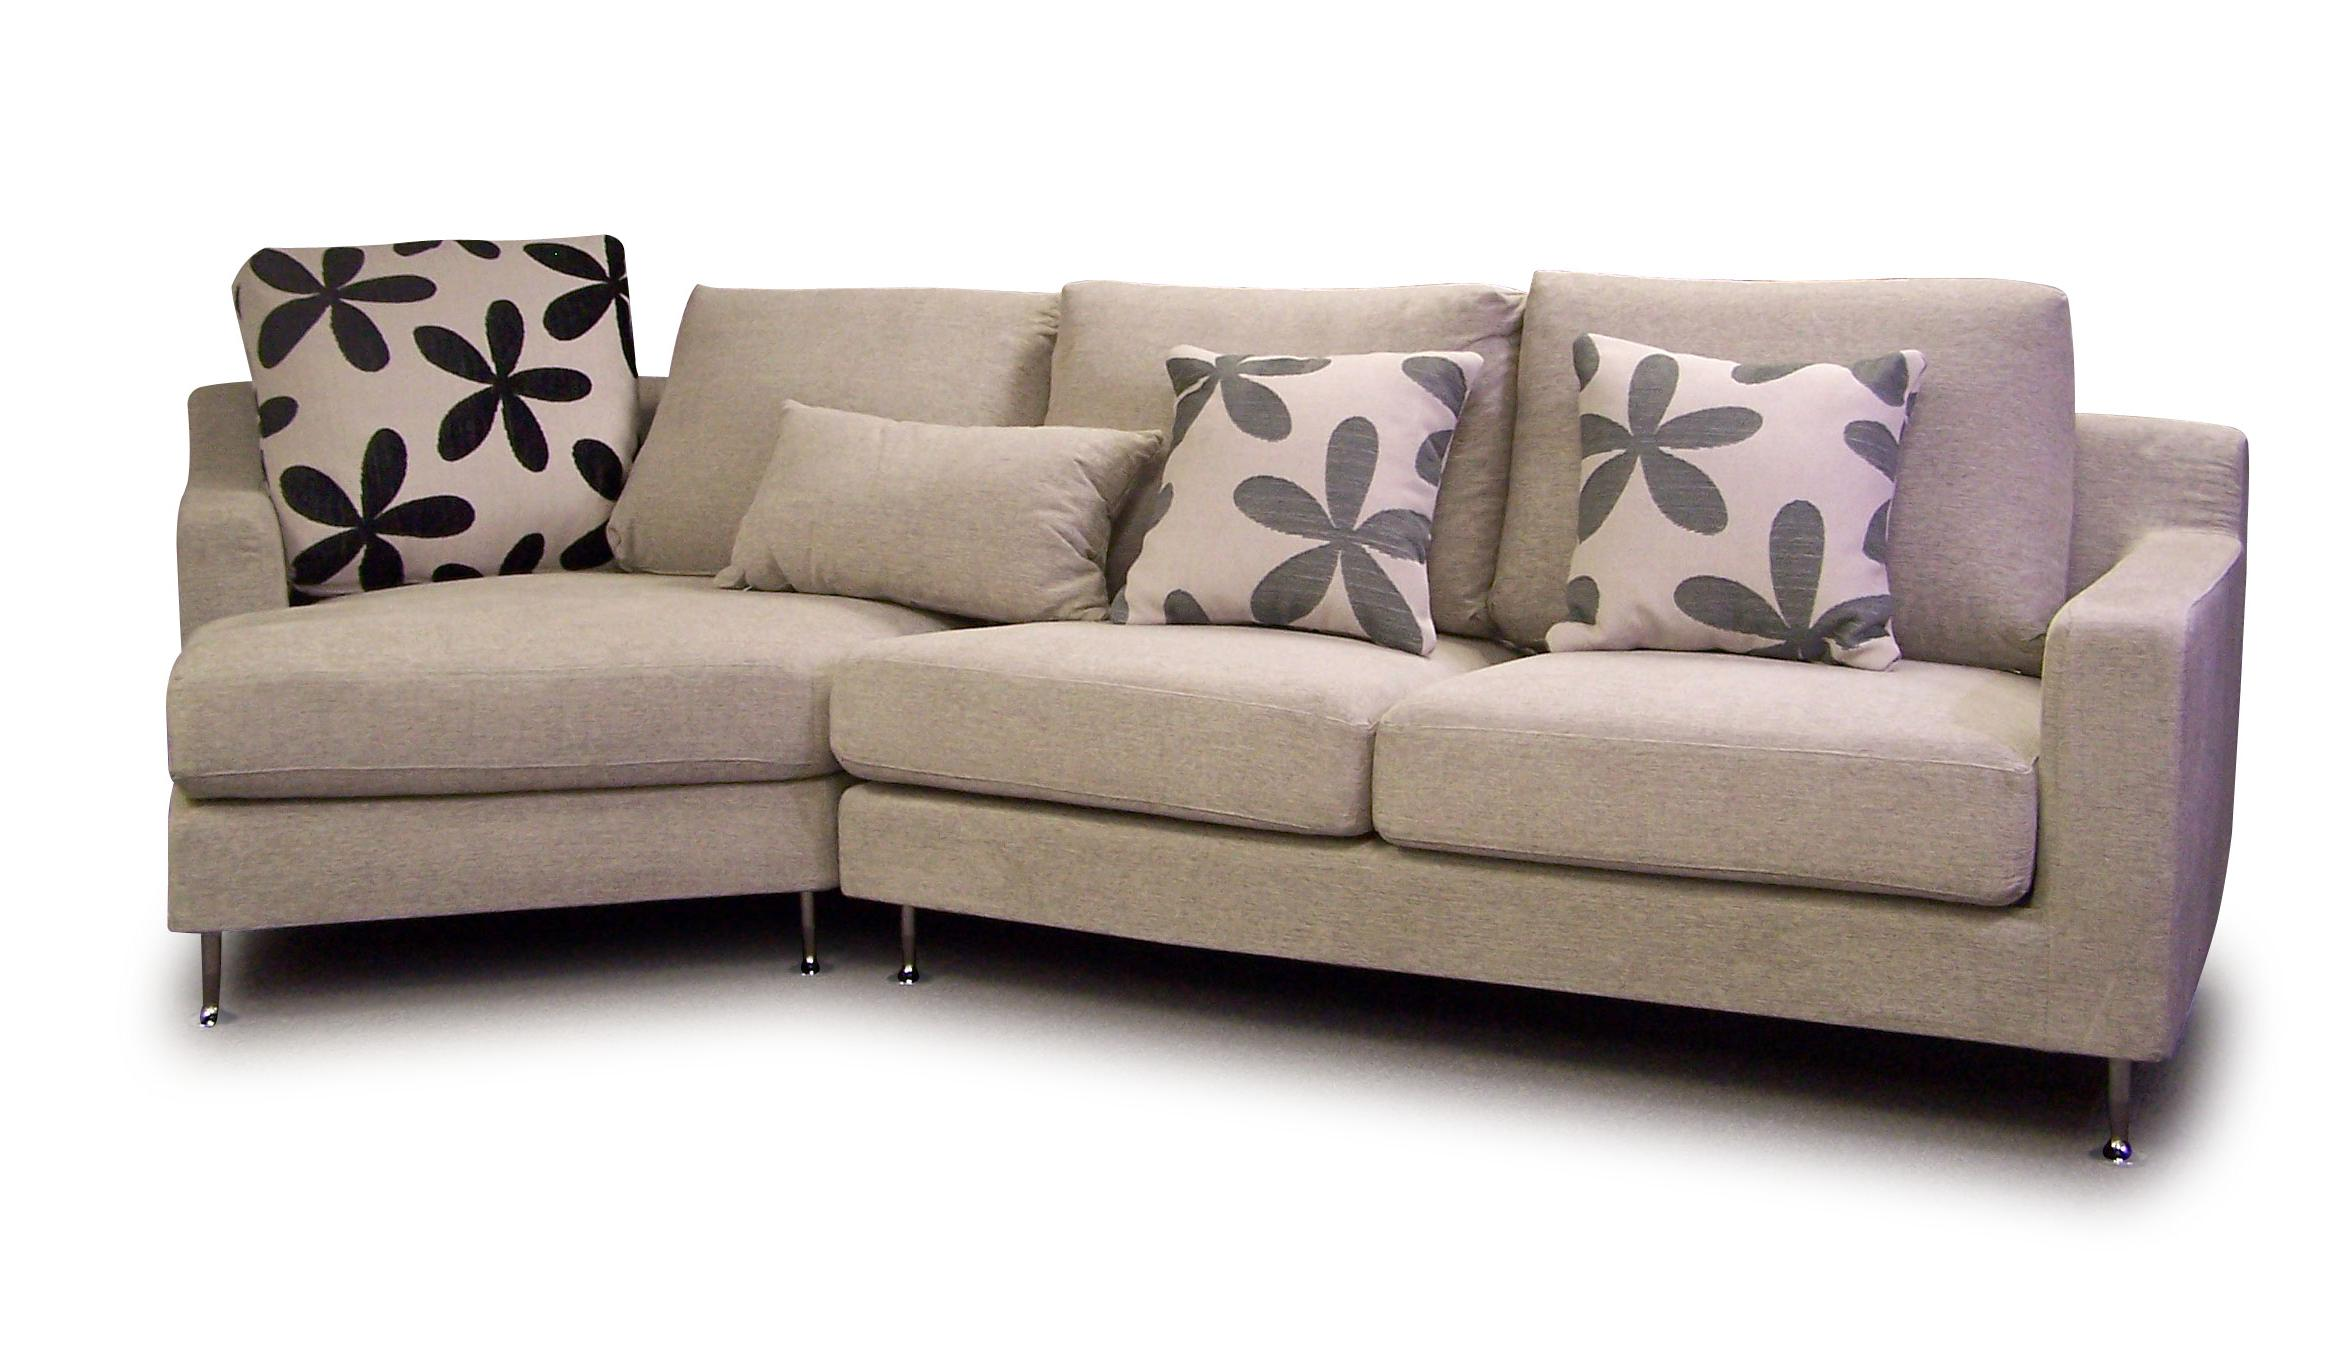 cheap sectional sofas in cream plus floral cushions for sofa ideas